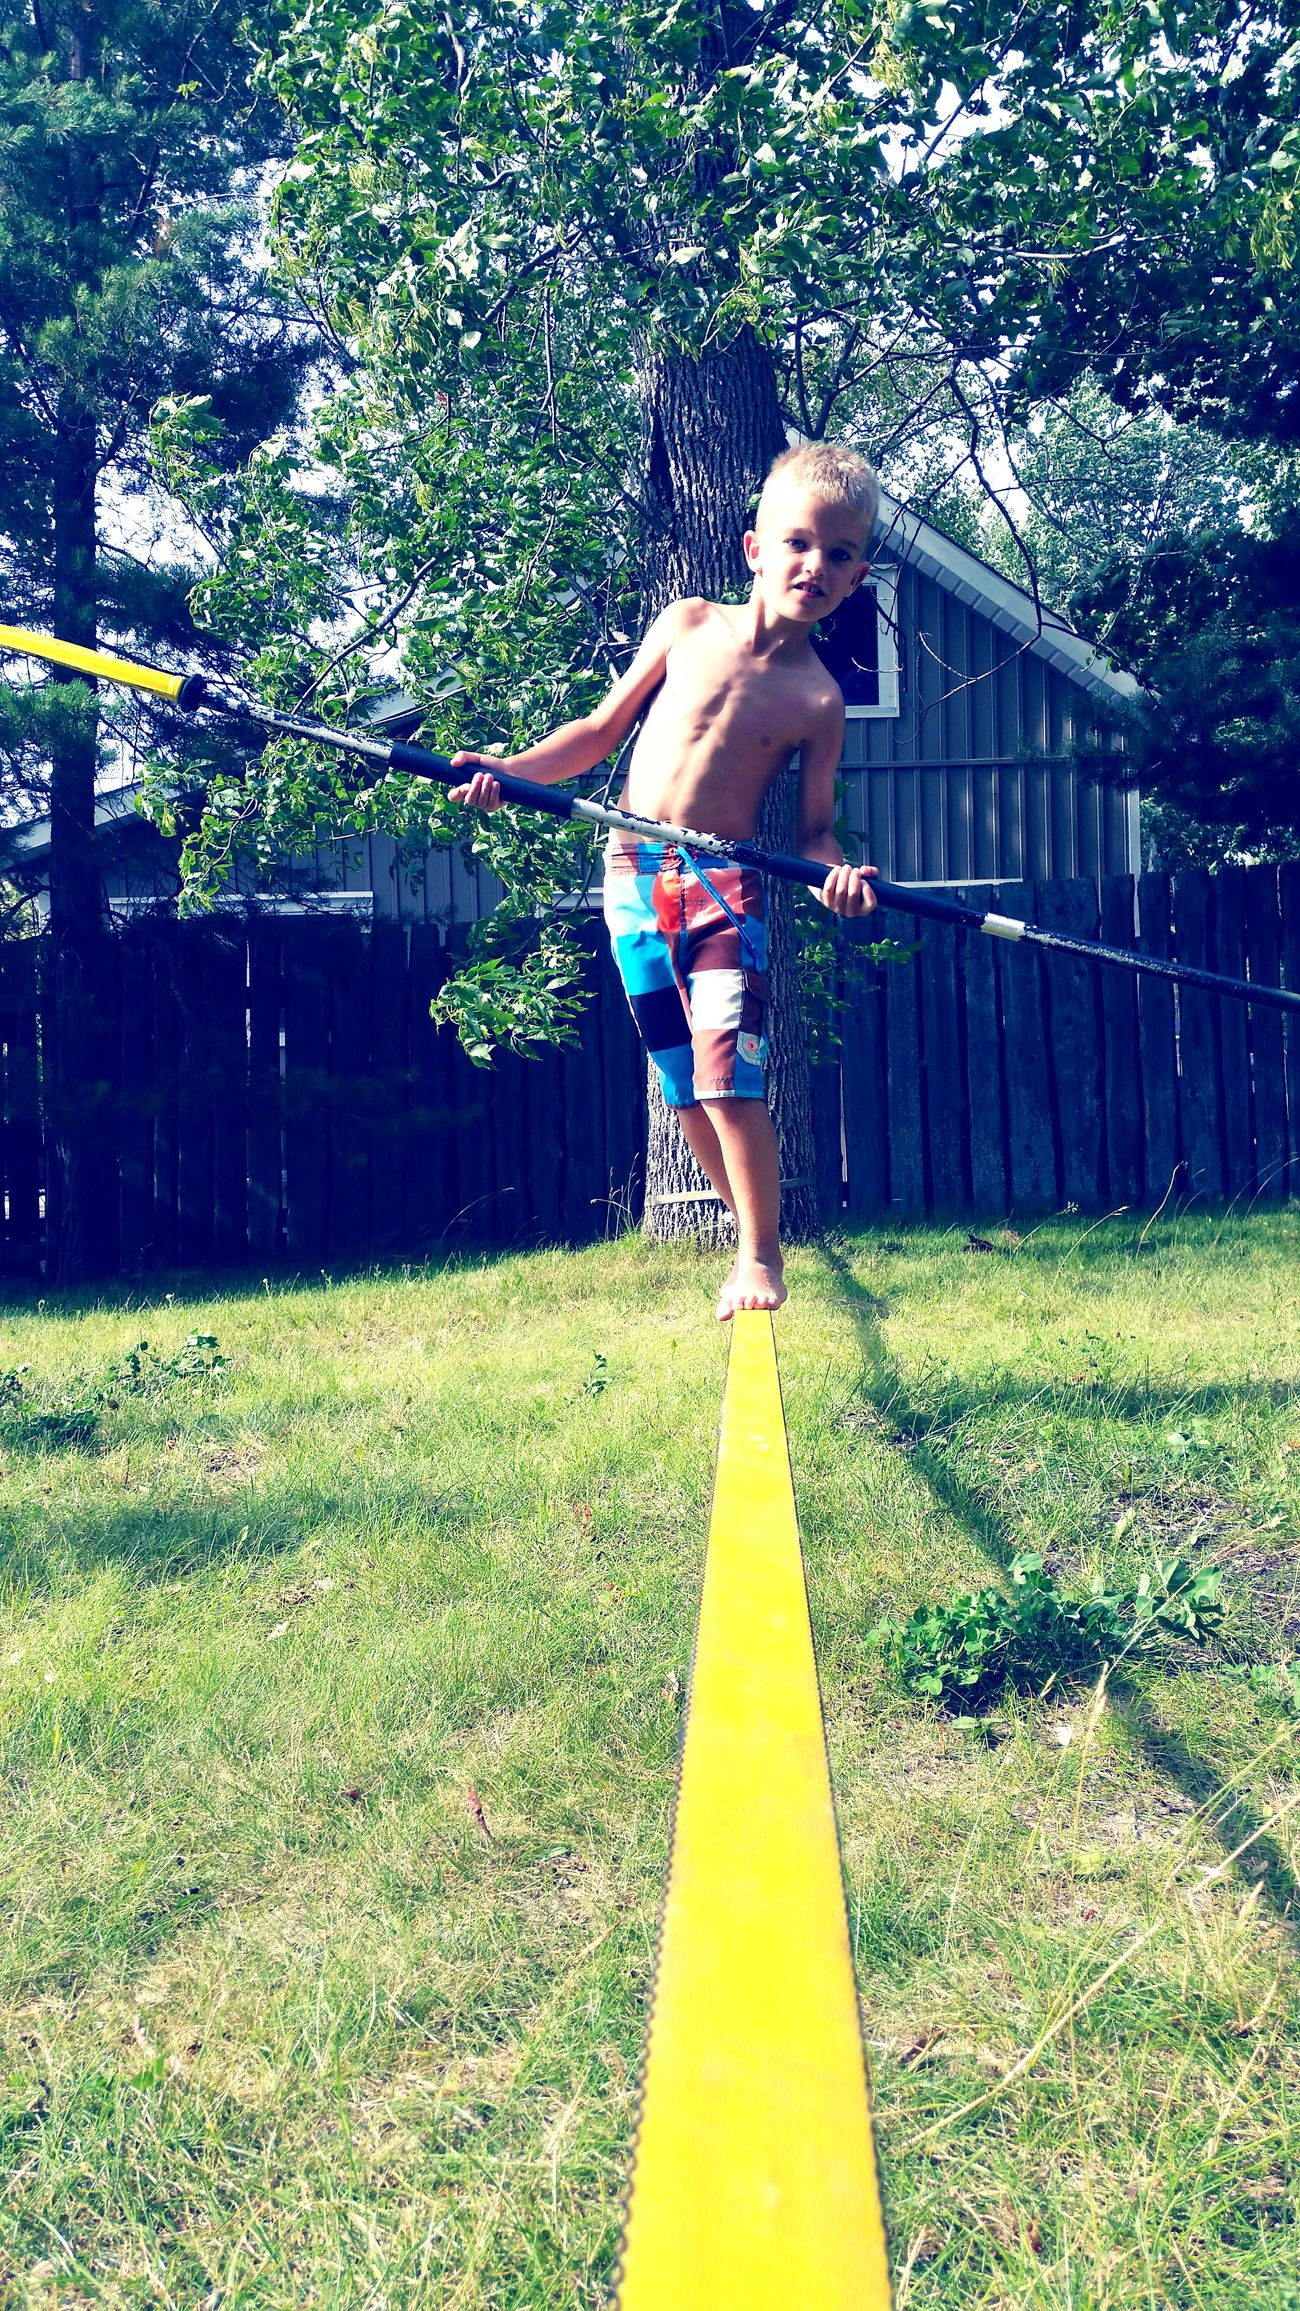 Max Slackrope With Paddles